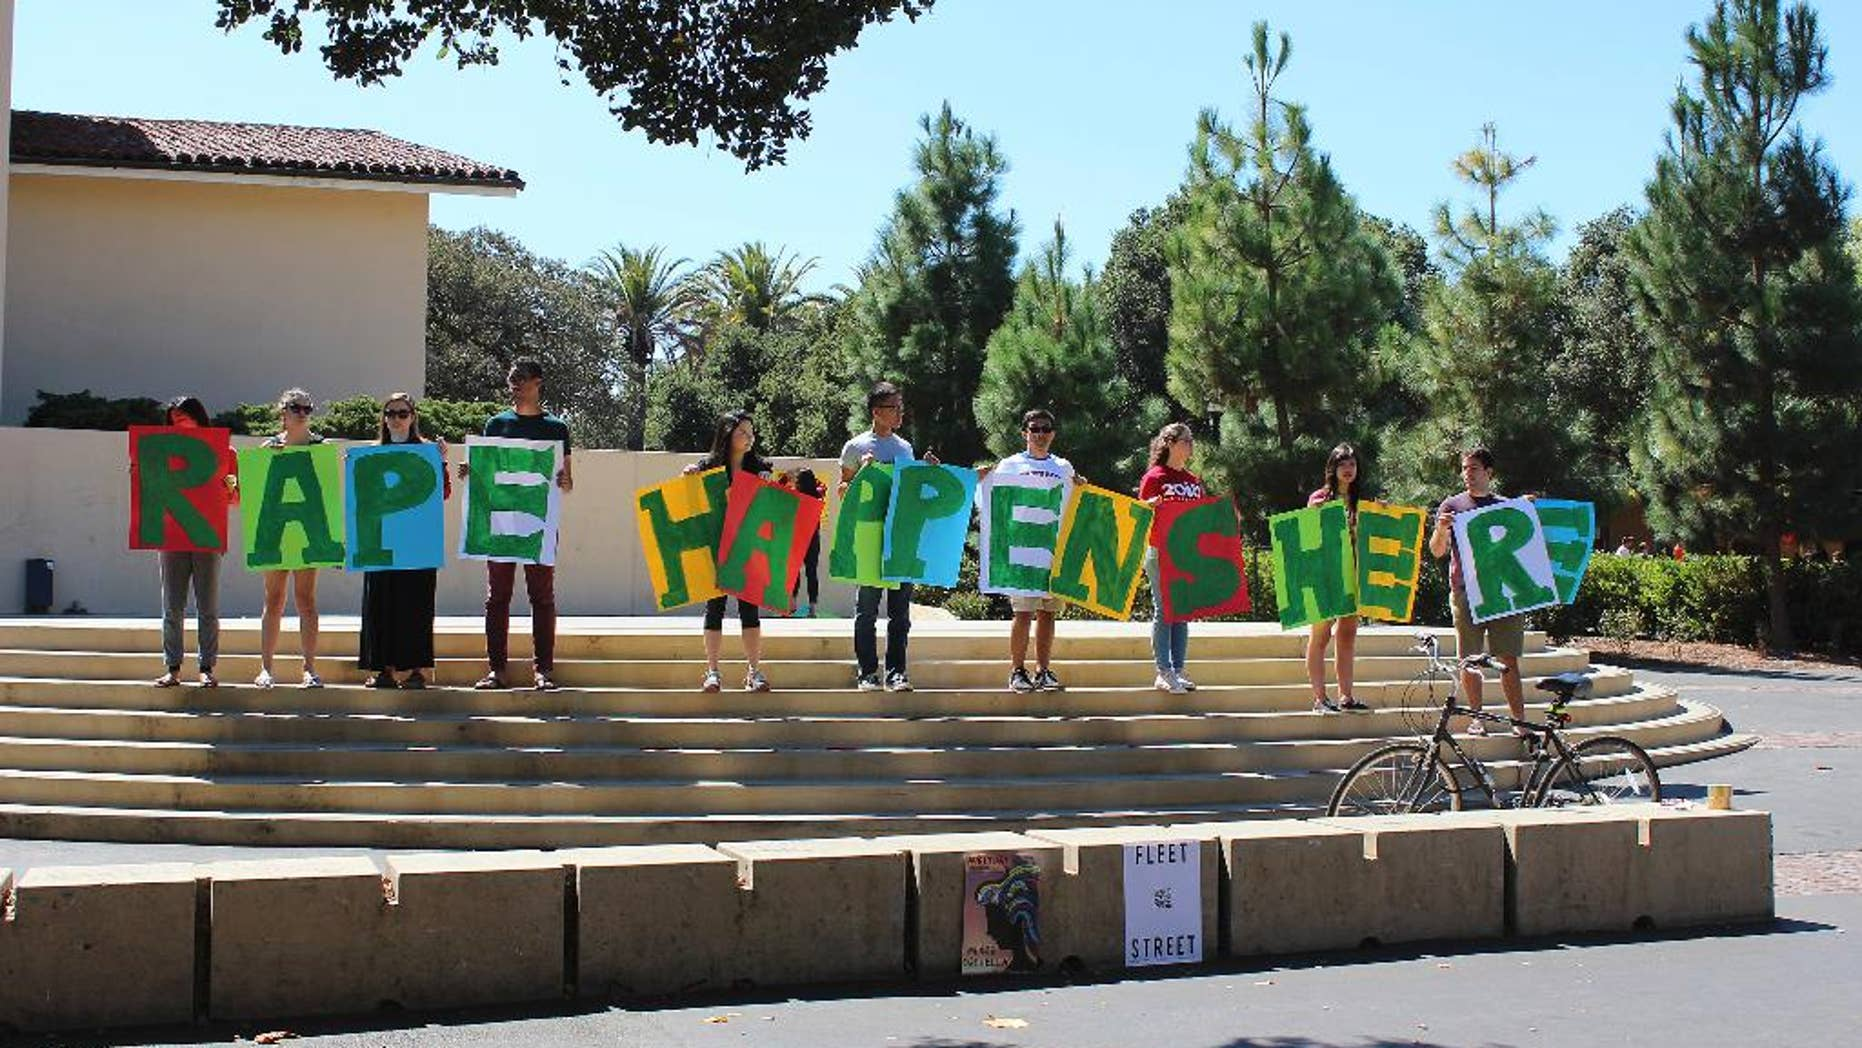 In this Sept. 16, 2015 photo provided by Tessa Ormenyi, students hold up a sign about rape at White Plaza during New Student Orientation on the Stanford University campus in Stanford, Calif. Stanford University considers itself a national leader on preventing and handling sexual assaults, but students have complained that the school isn't doing enough and have drawn attention to the issue by holding demonstrations. (Tessa Ormenyi via AP) MANDATORY CREDIT